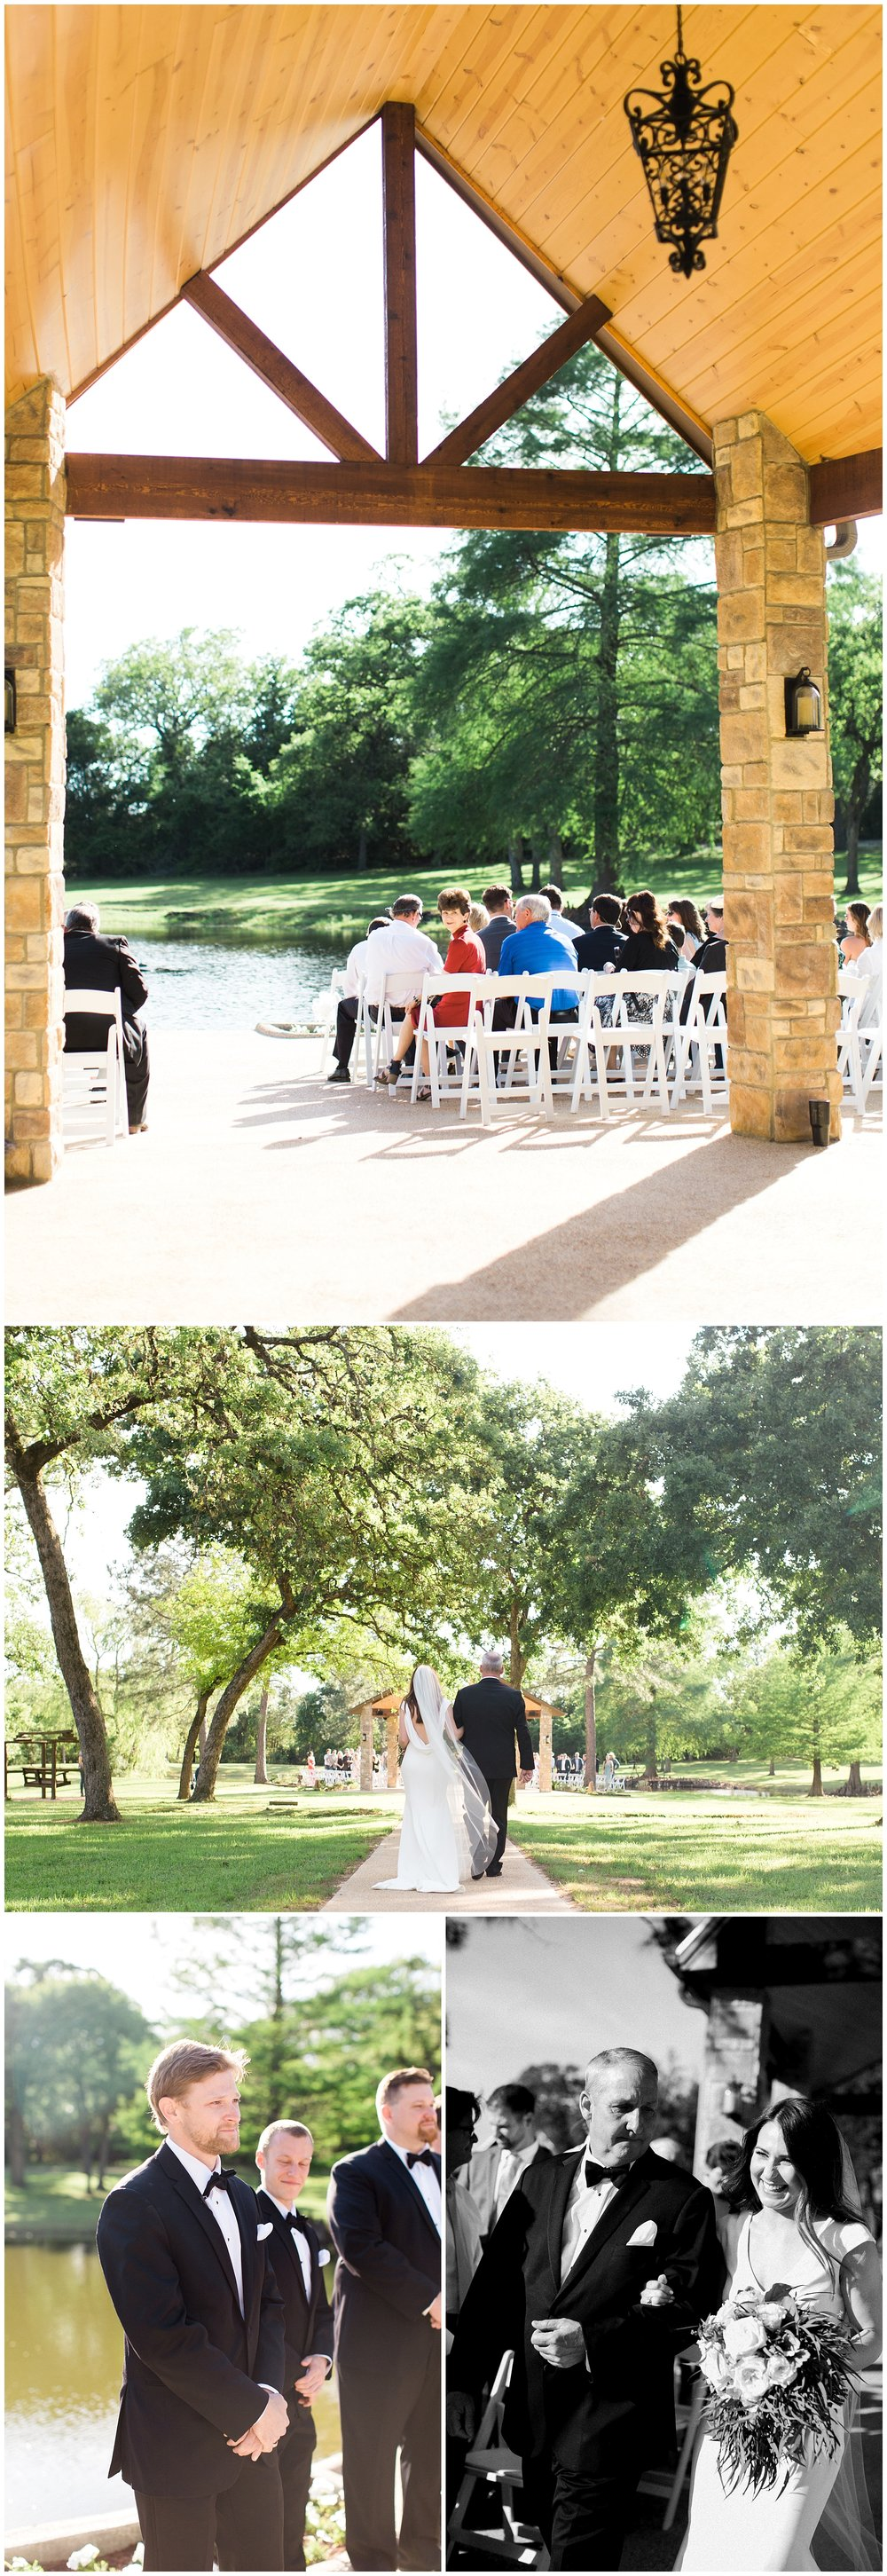 WindDancerRetreatWedding_0008.jpg